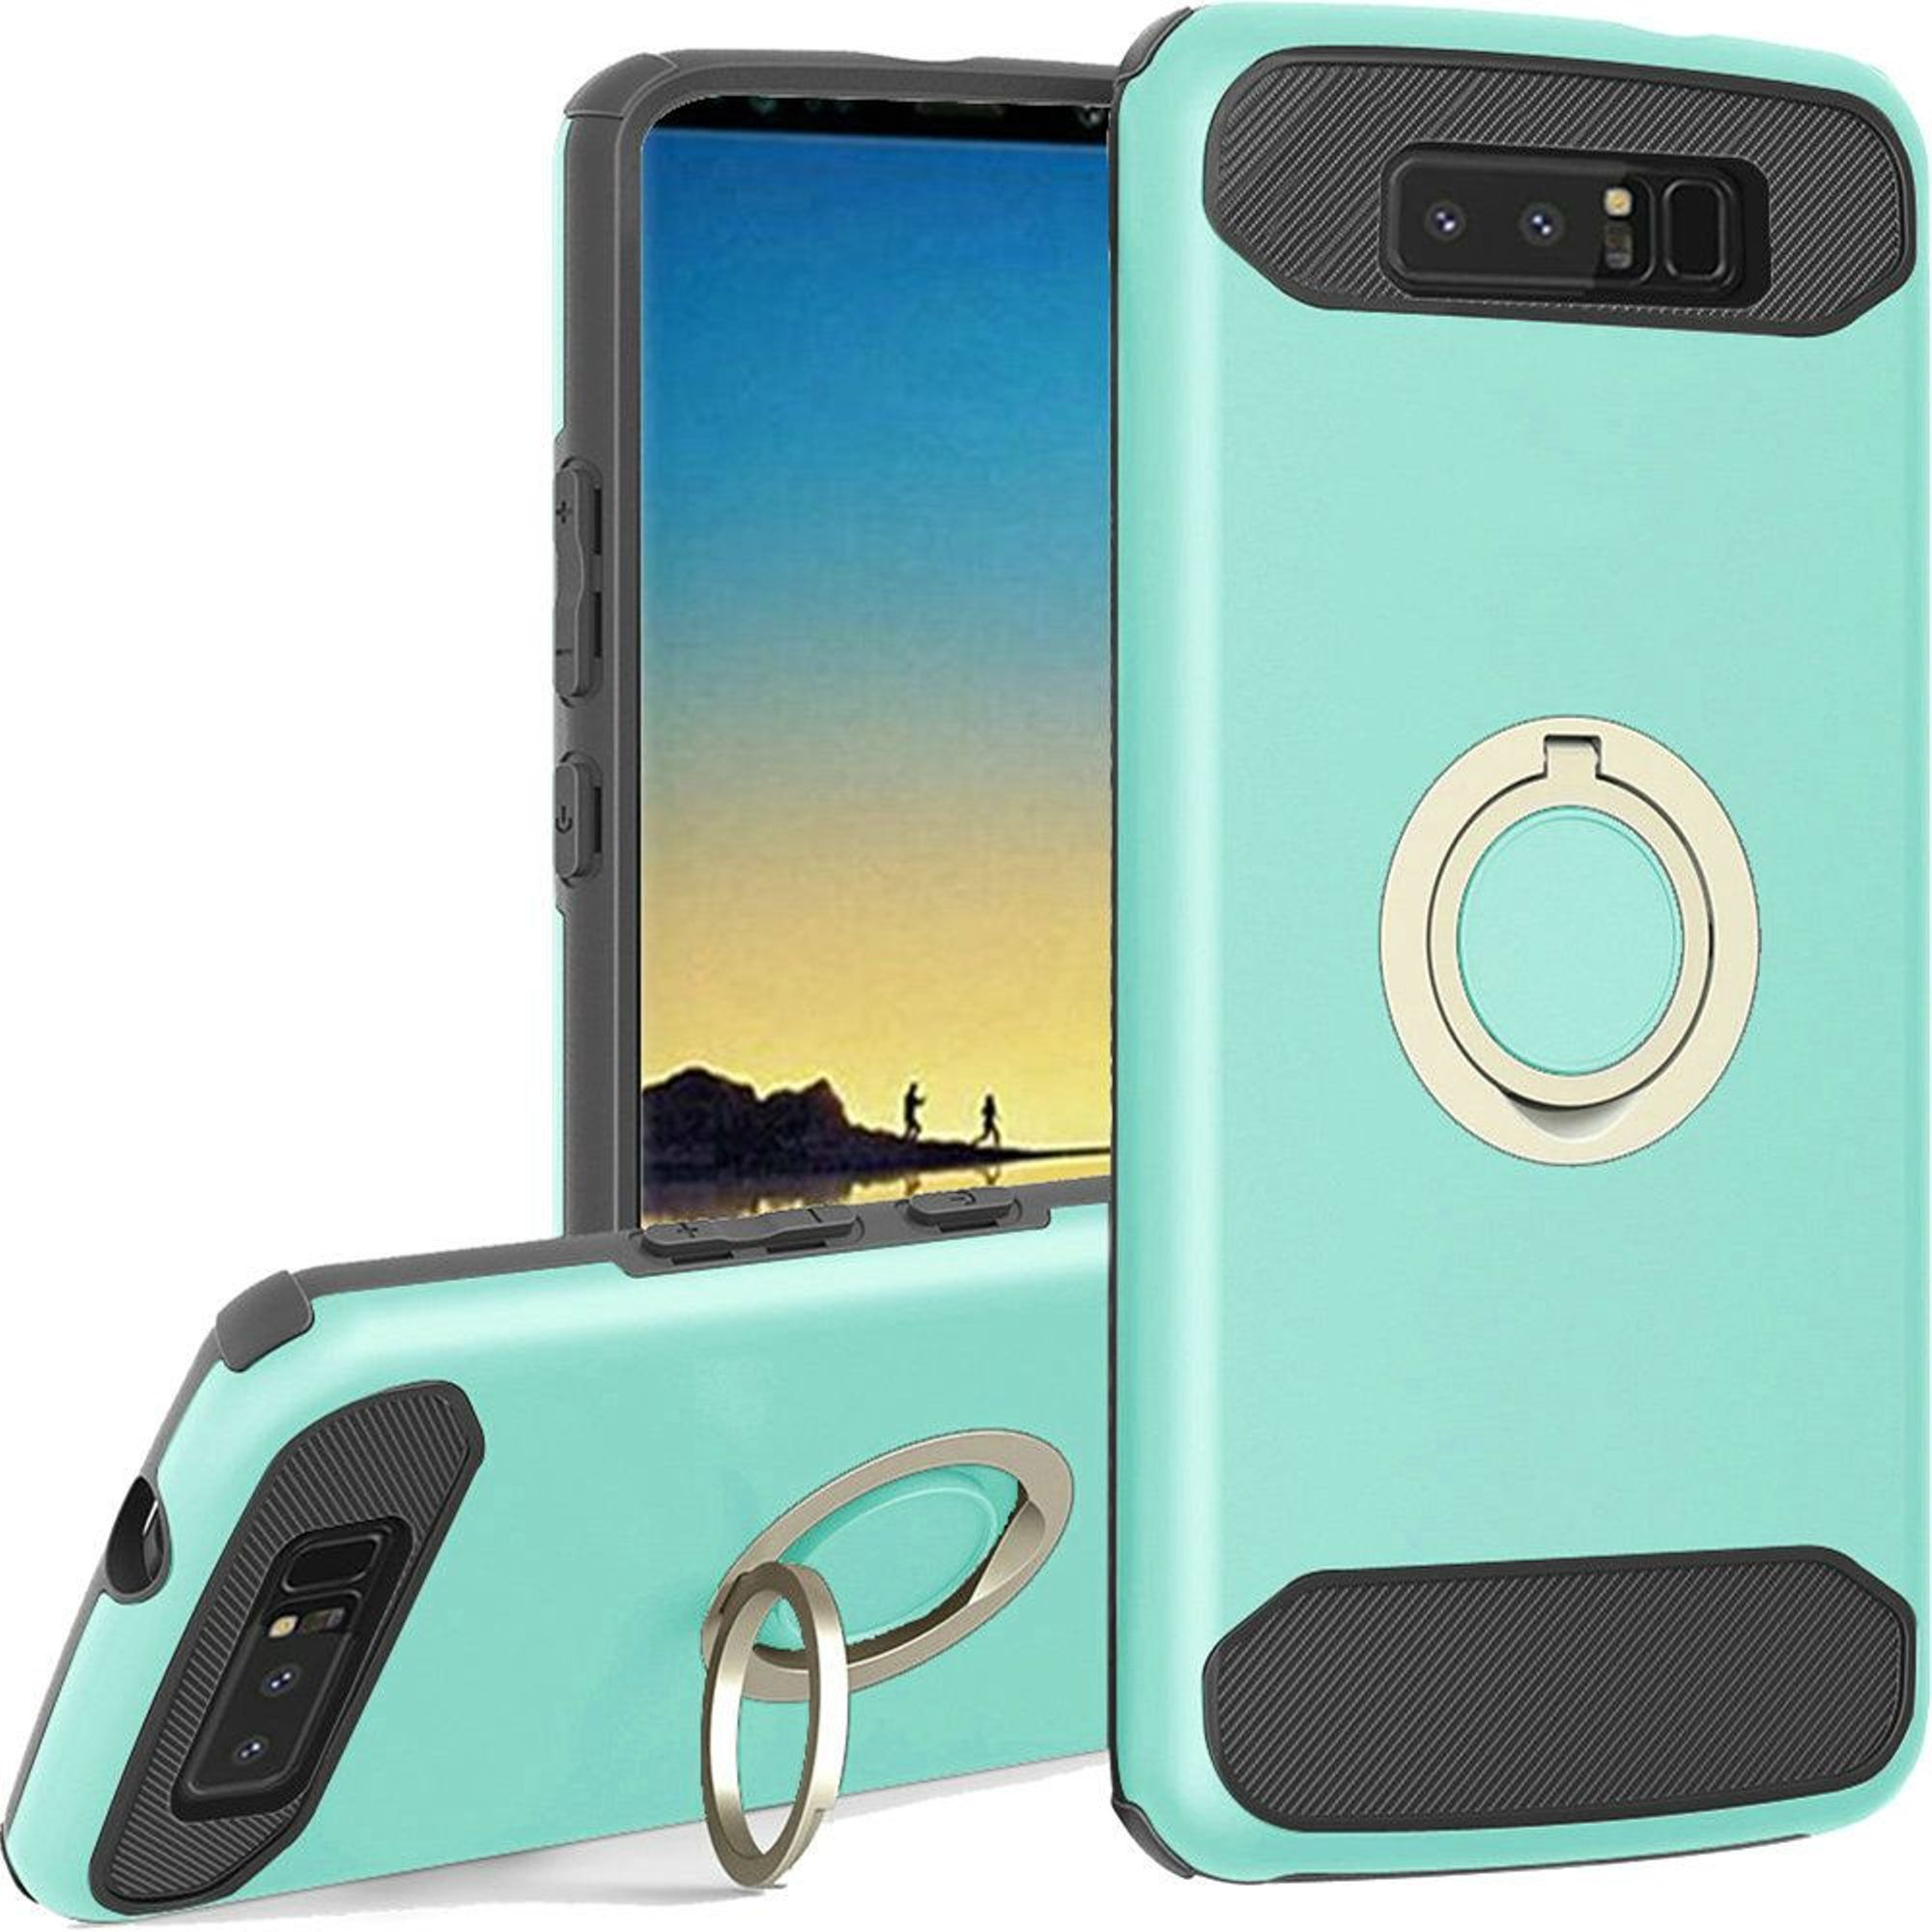 HR Wireless Dual Layer [Shock Absorbing] Hybrid Ring stand Hard Snap-in Case Cover For Samsung Galaxy Note 8, Teal/Black